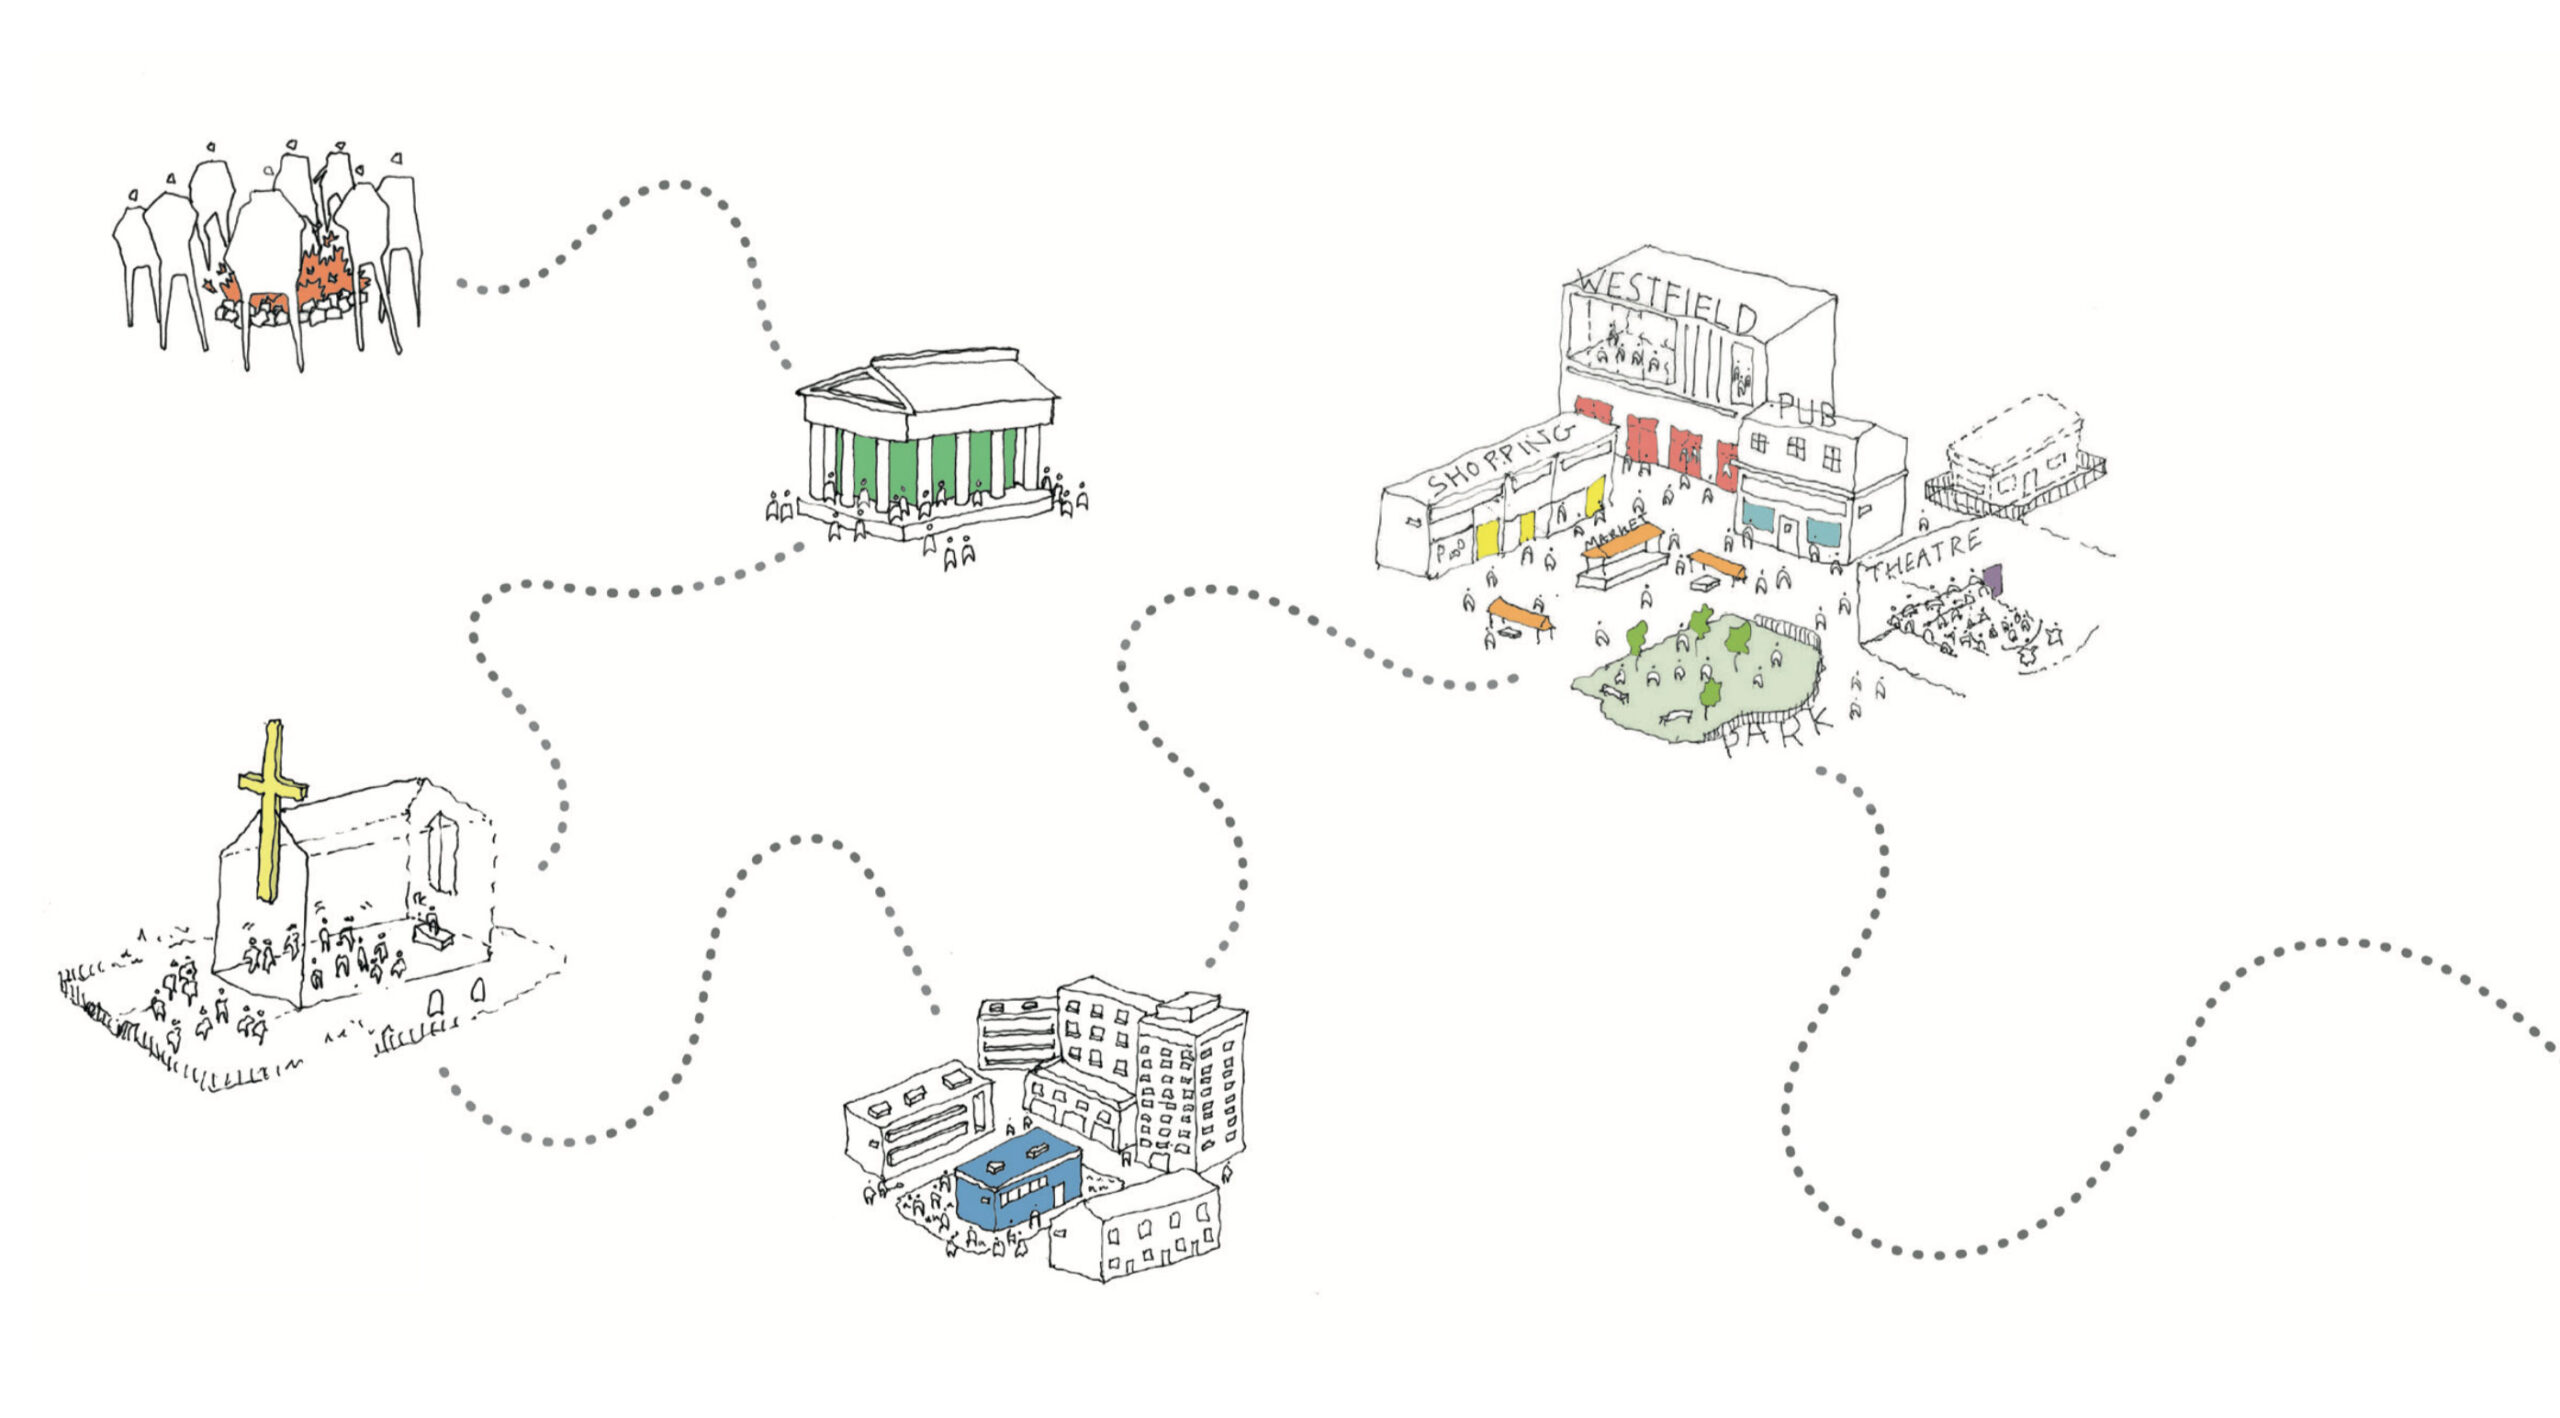 Diagram showing the history of community spaces.